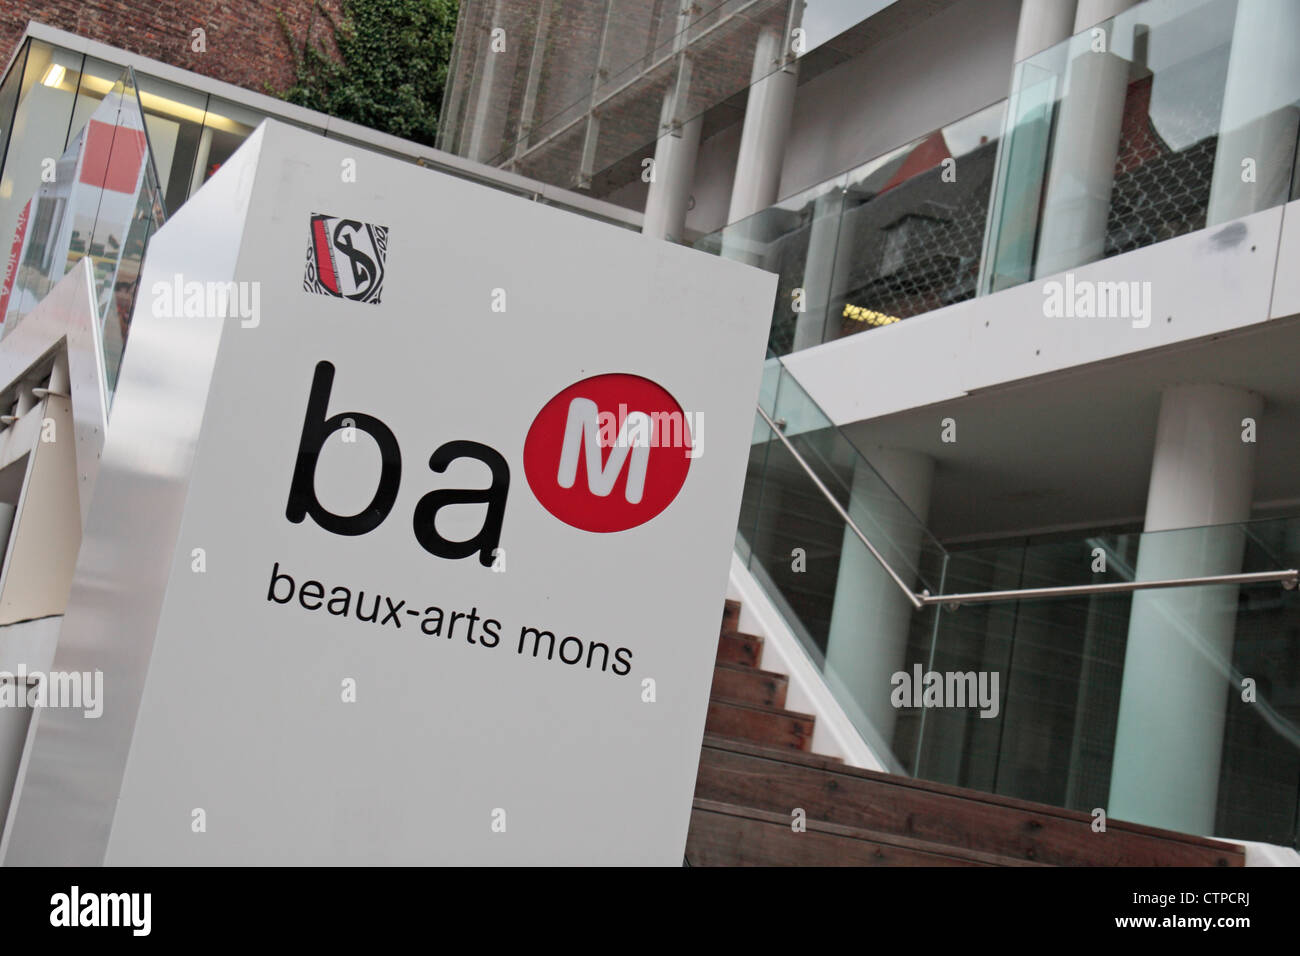 Entrance to Beaux-Arts Mons or BAM (Fine Arts Mons) in Mons, Wallonia, Southern Belgium. Stock Photo